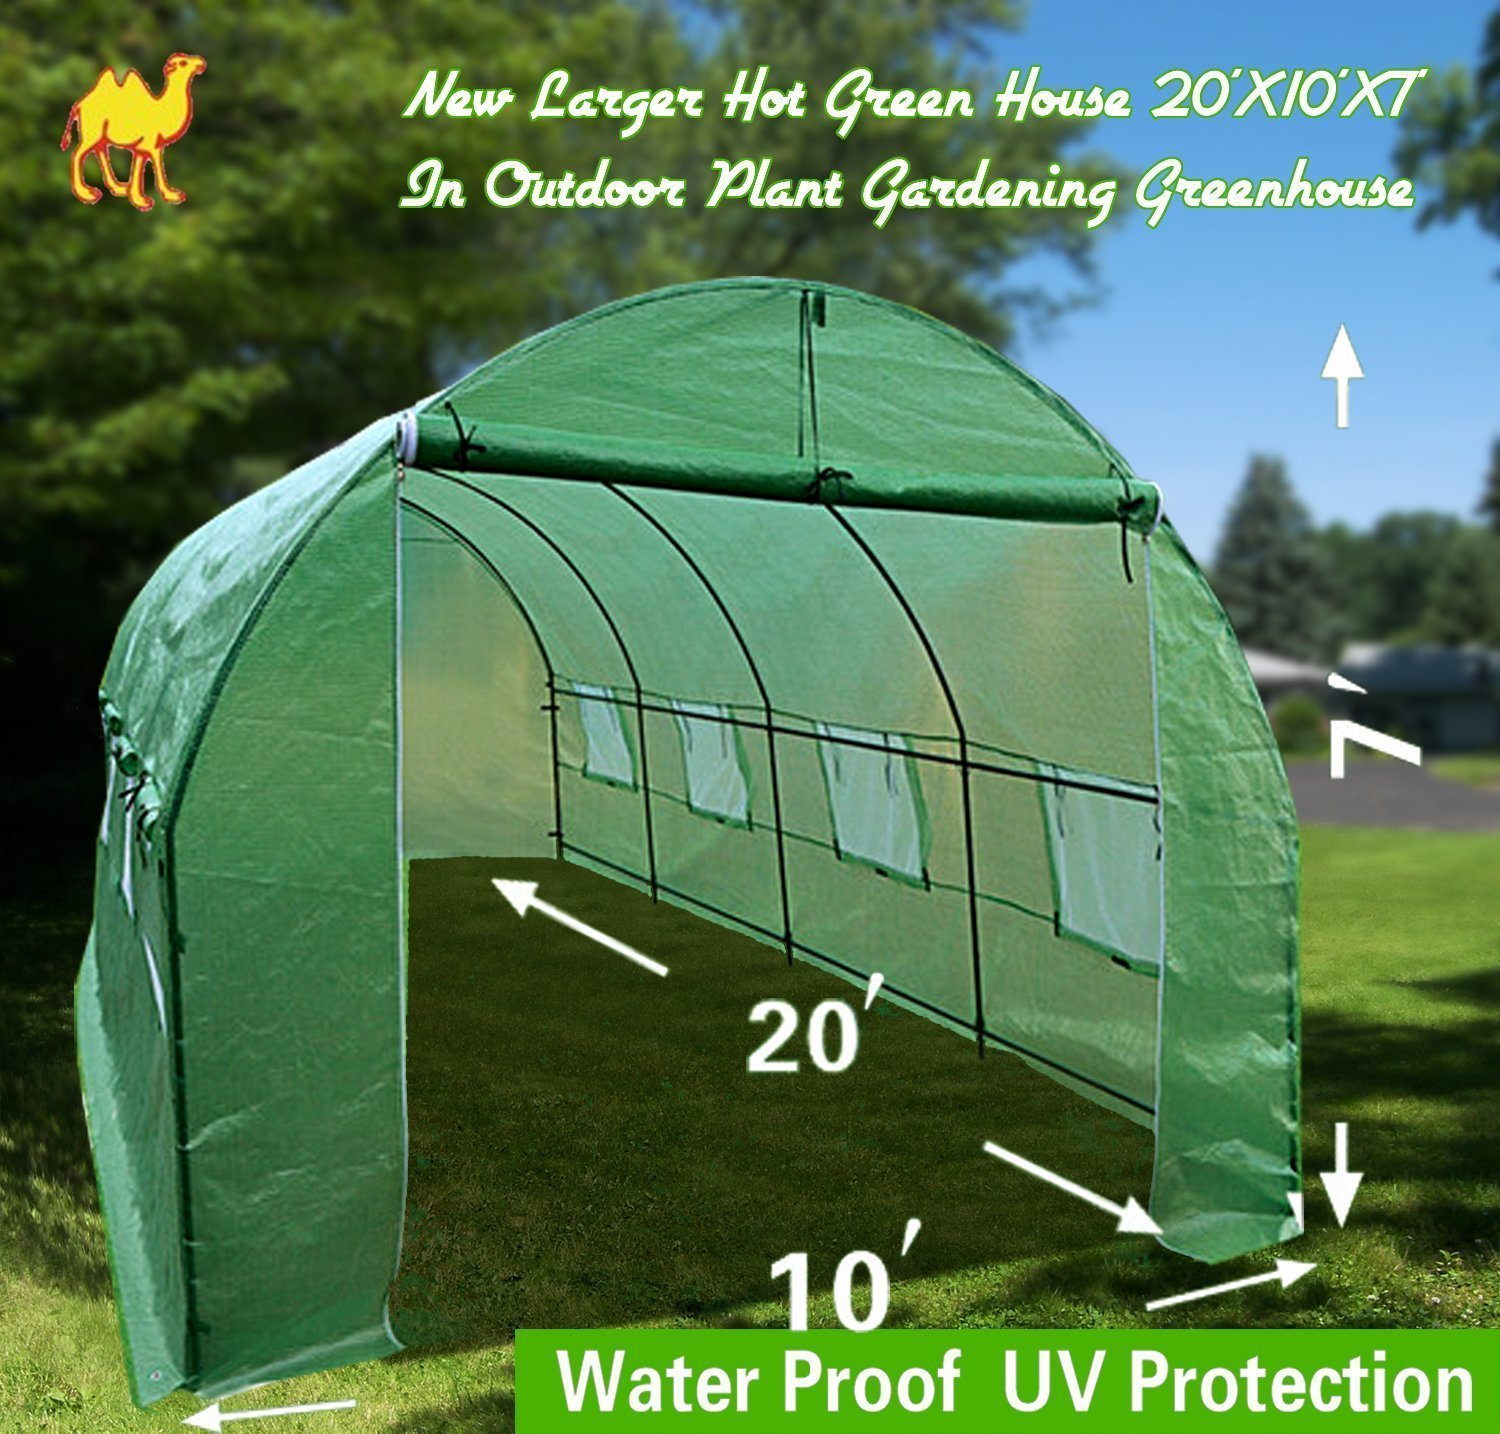 Strong Camel New Larger Hot Green House 20'X10'X7' in Outdoor Plant Gardening Greenhouse